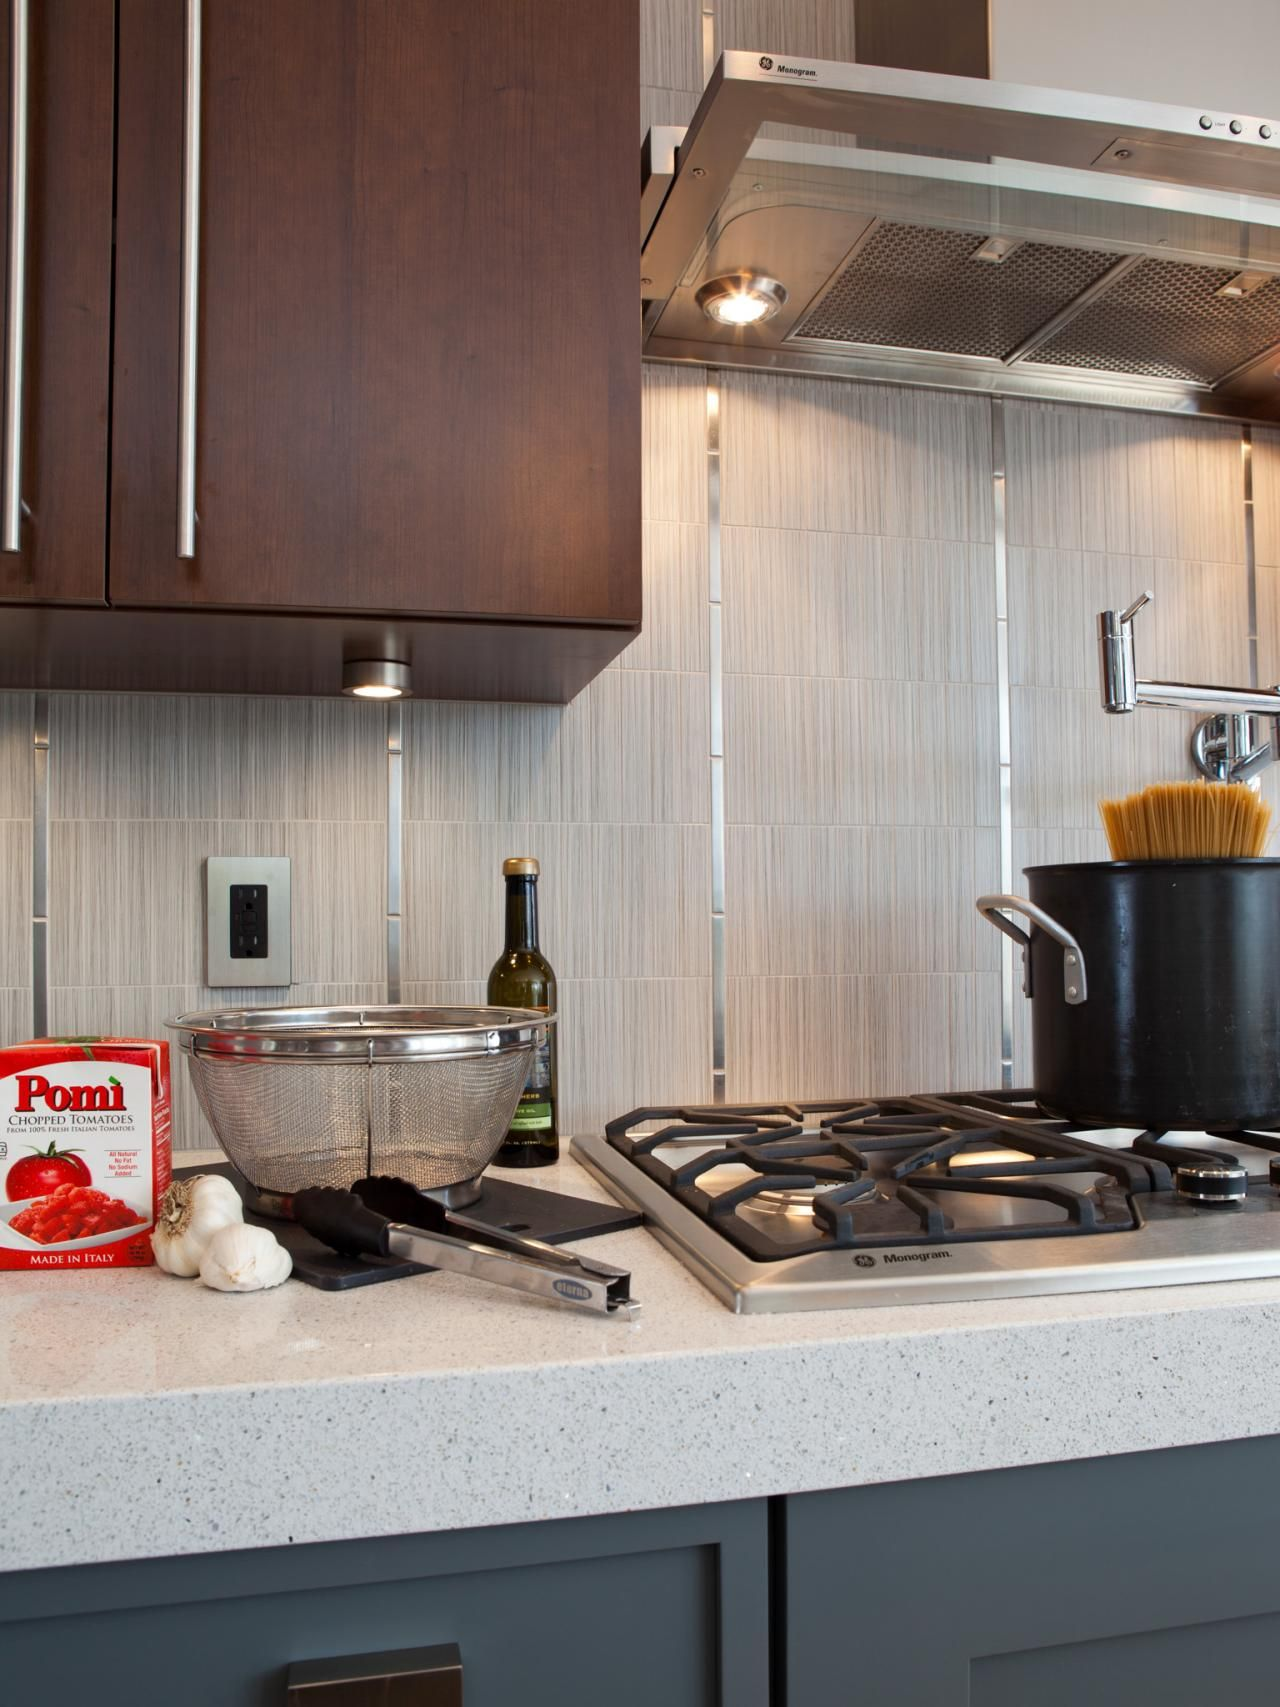 A three inch thick white quartz countertop makes the countertop stand out as a focal point